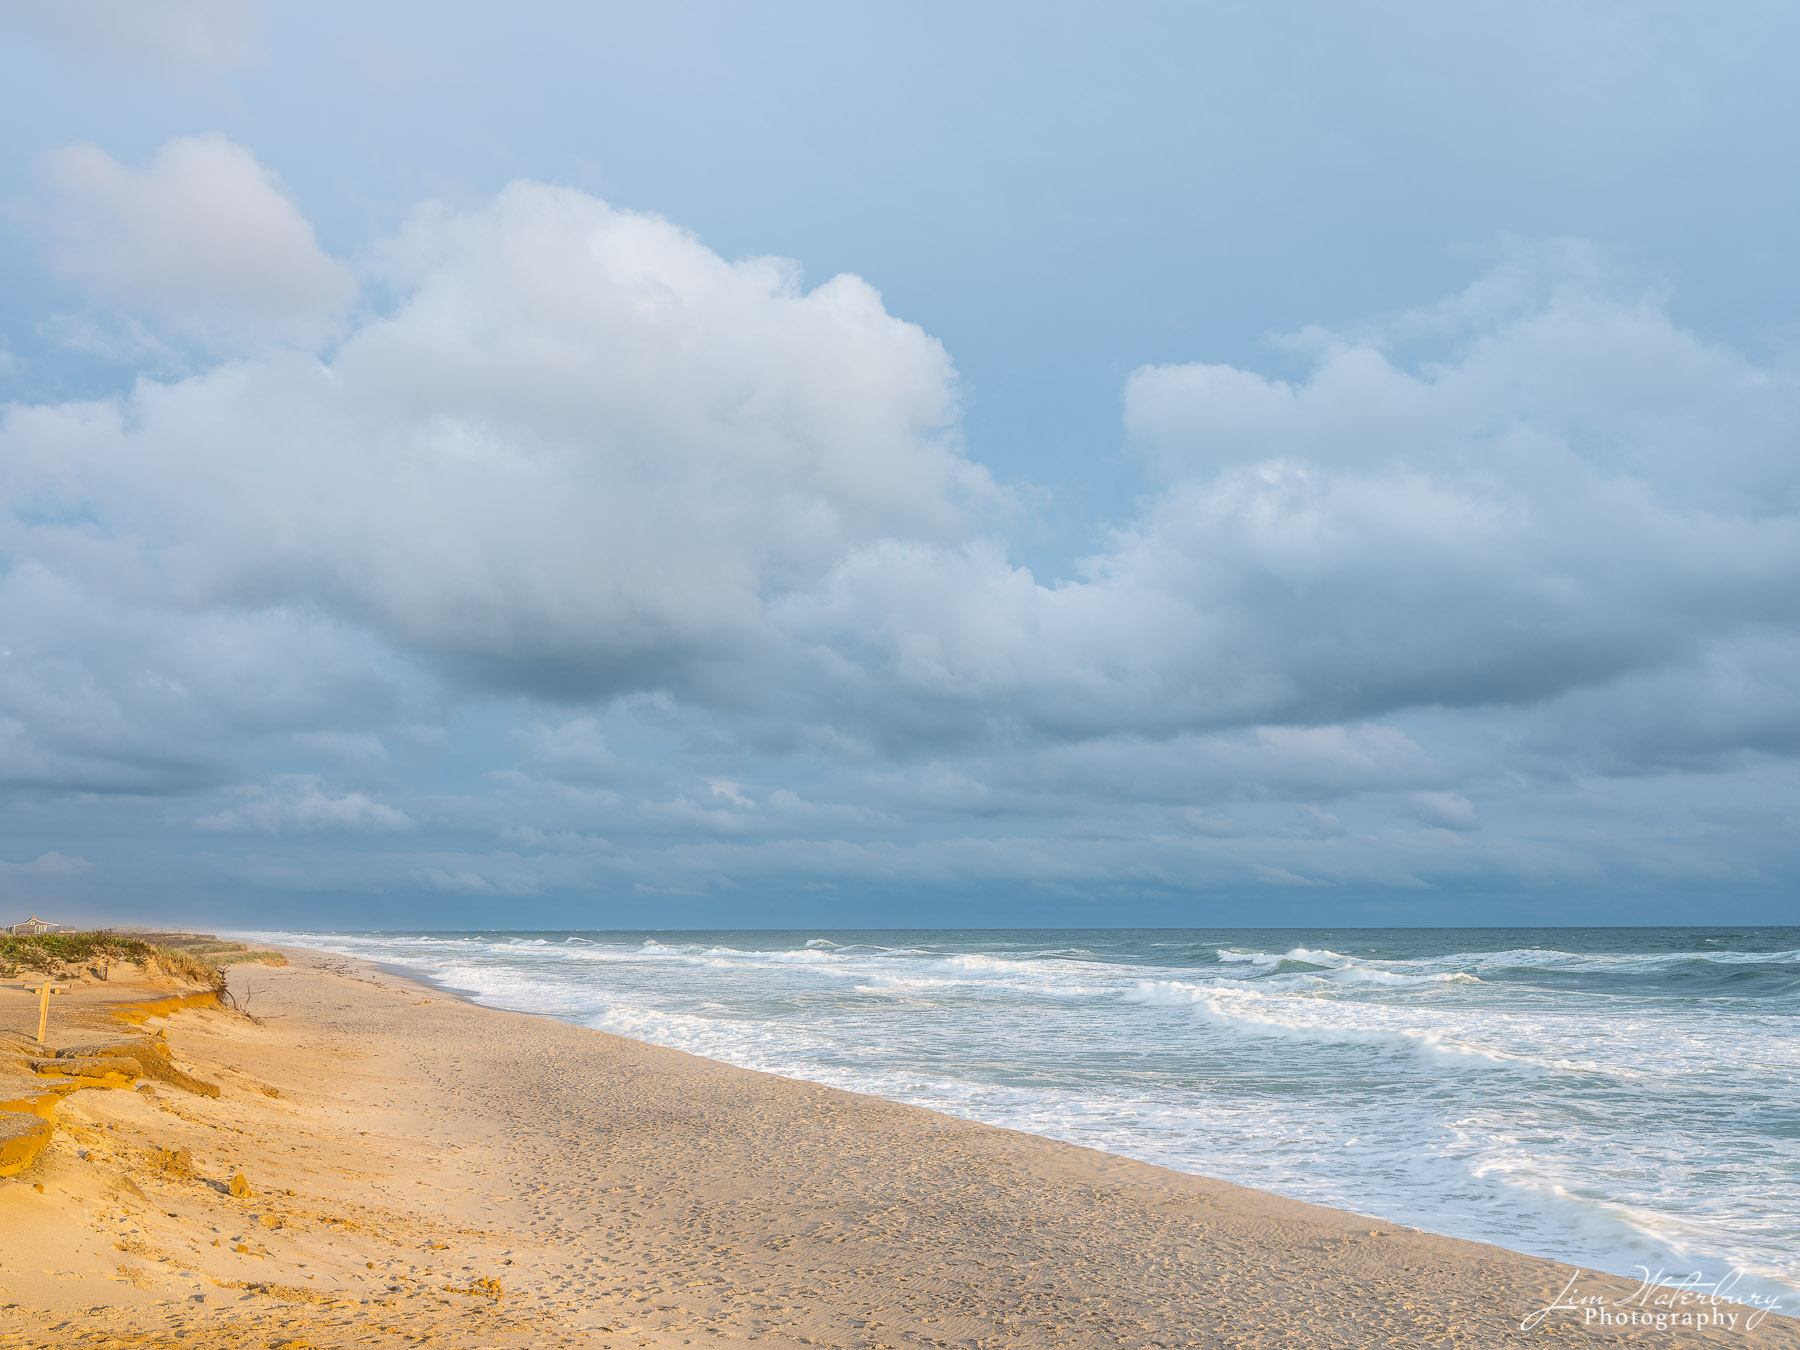 A moody, but quiet beach and ocean scene in late October on Nantucket.